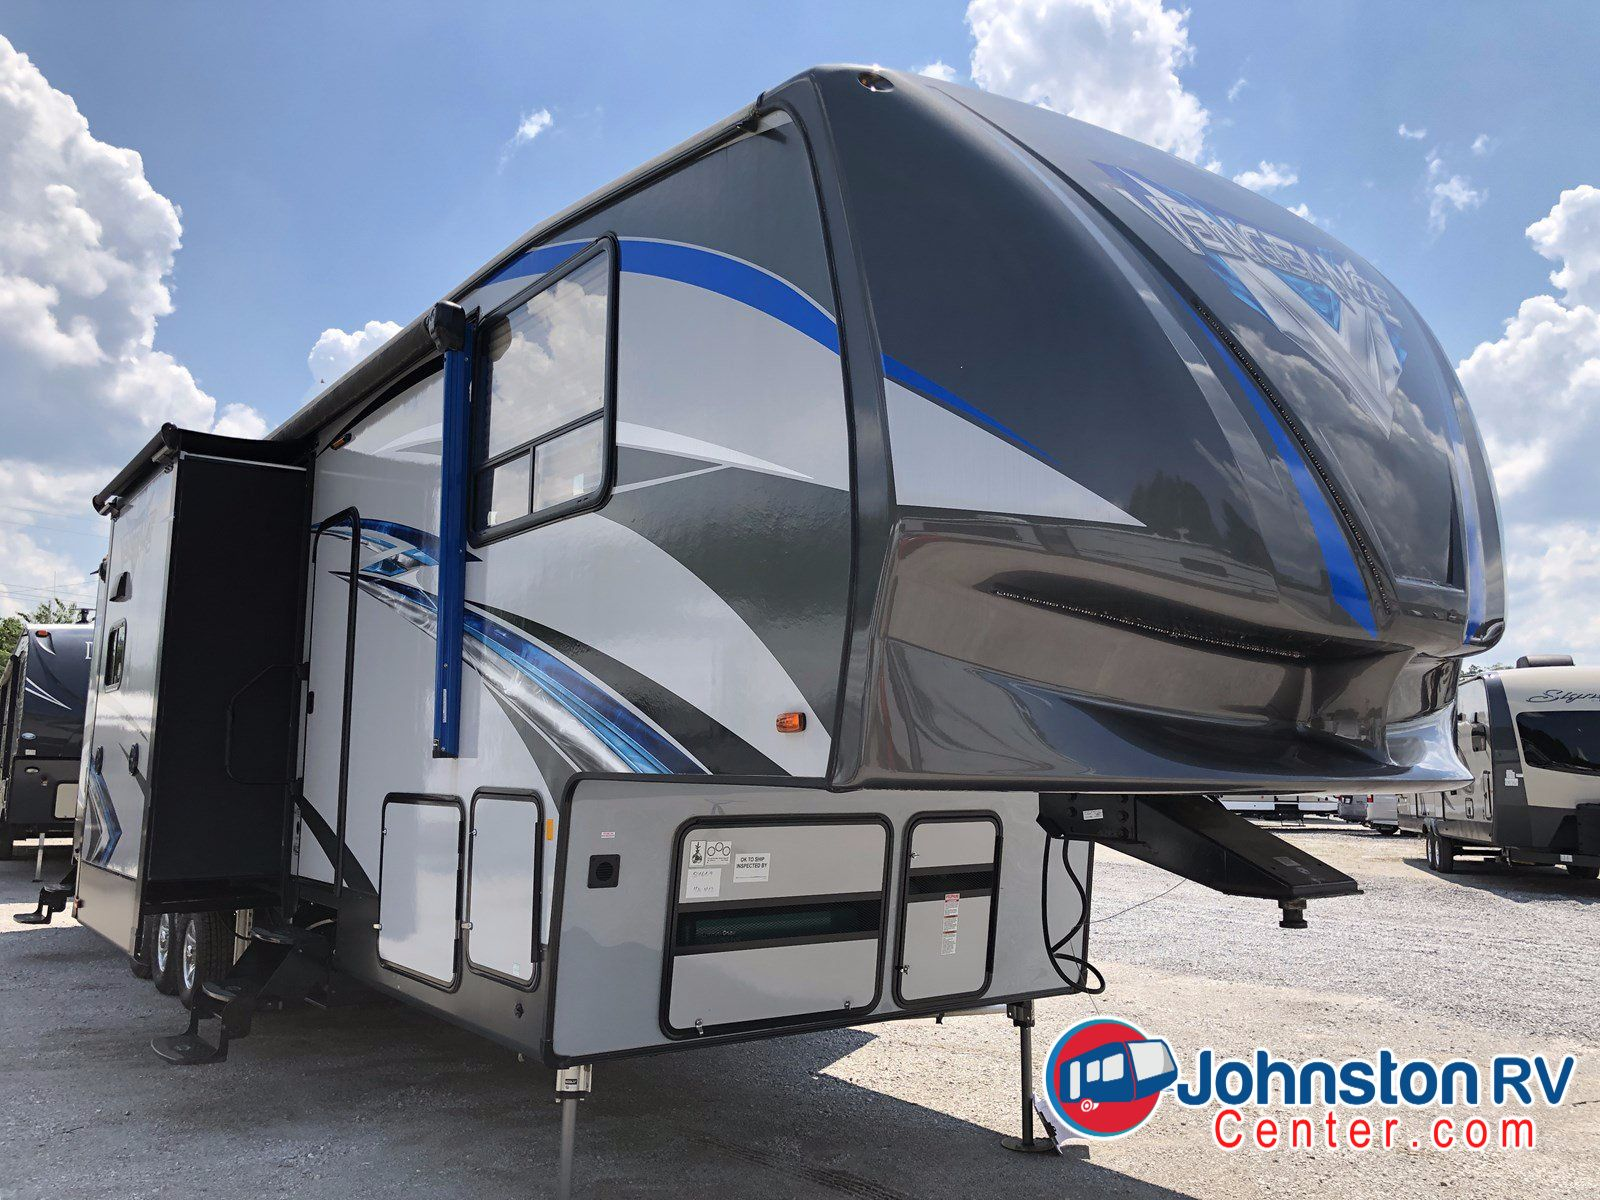 Backed By Rv Warranty Forever The Only True Lifetime Warranty In North Alabama Rv Camping Fifthwheel Traveltrailer Forest River Fresh Water Tank Decatur